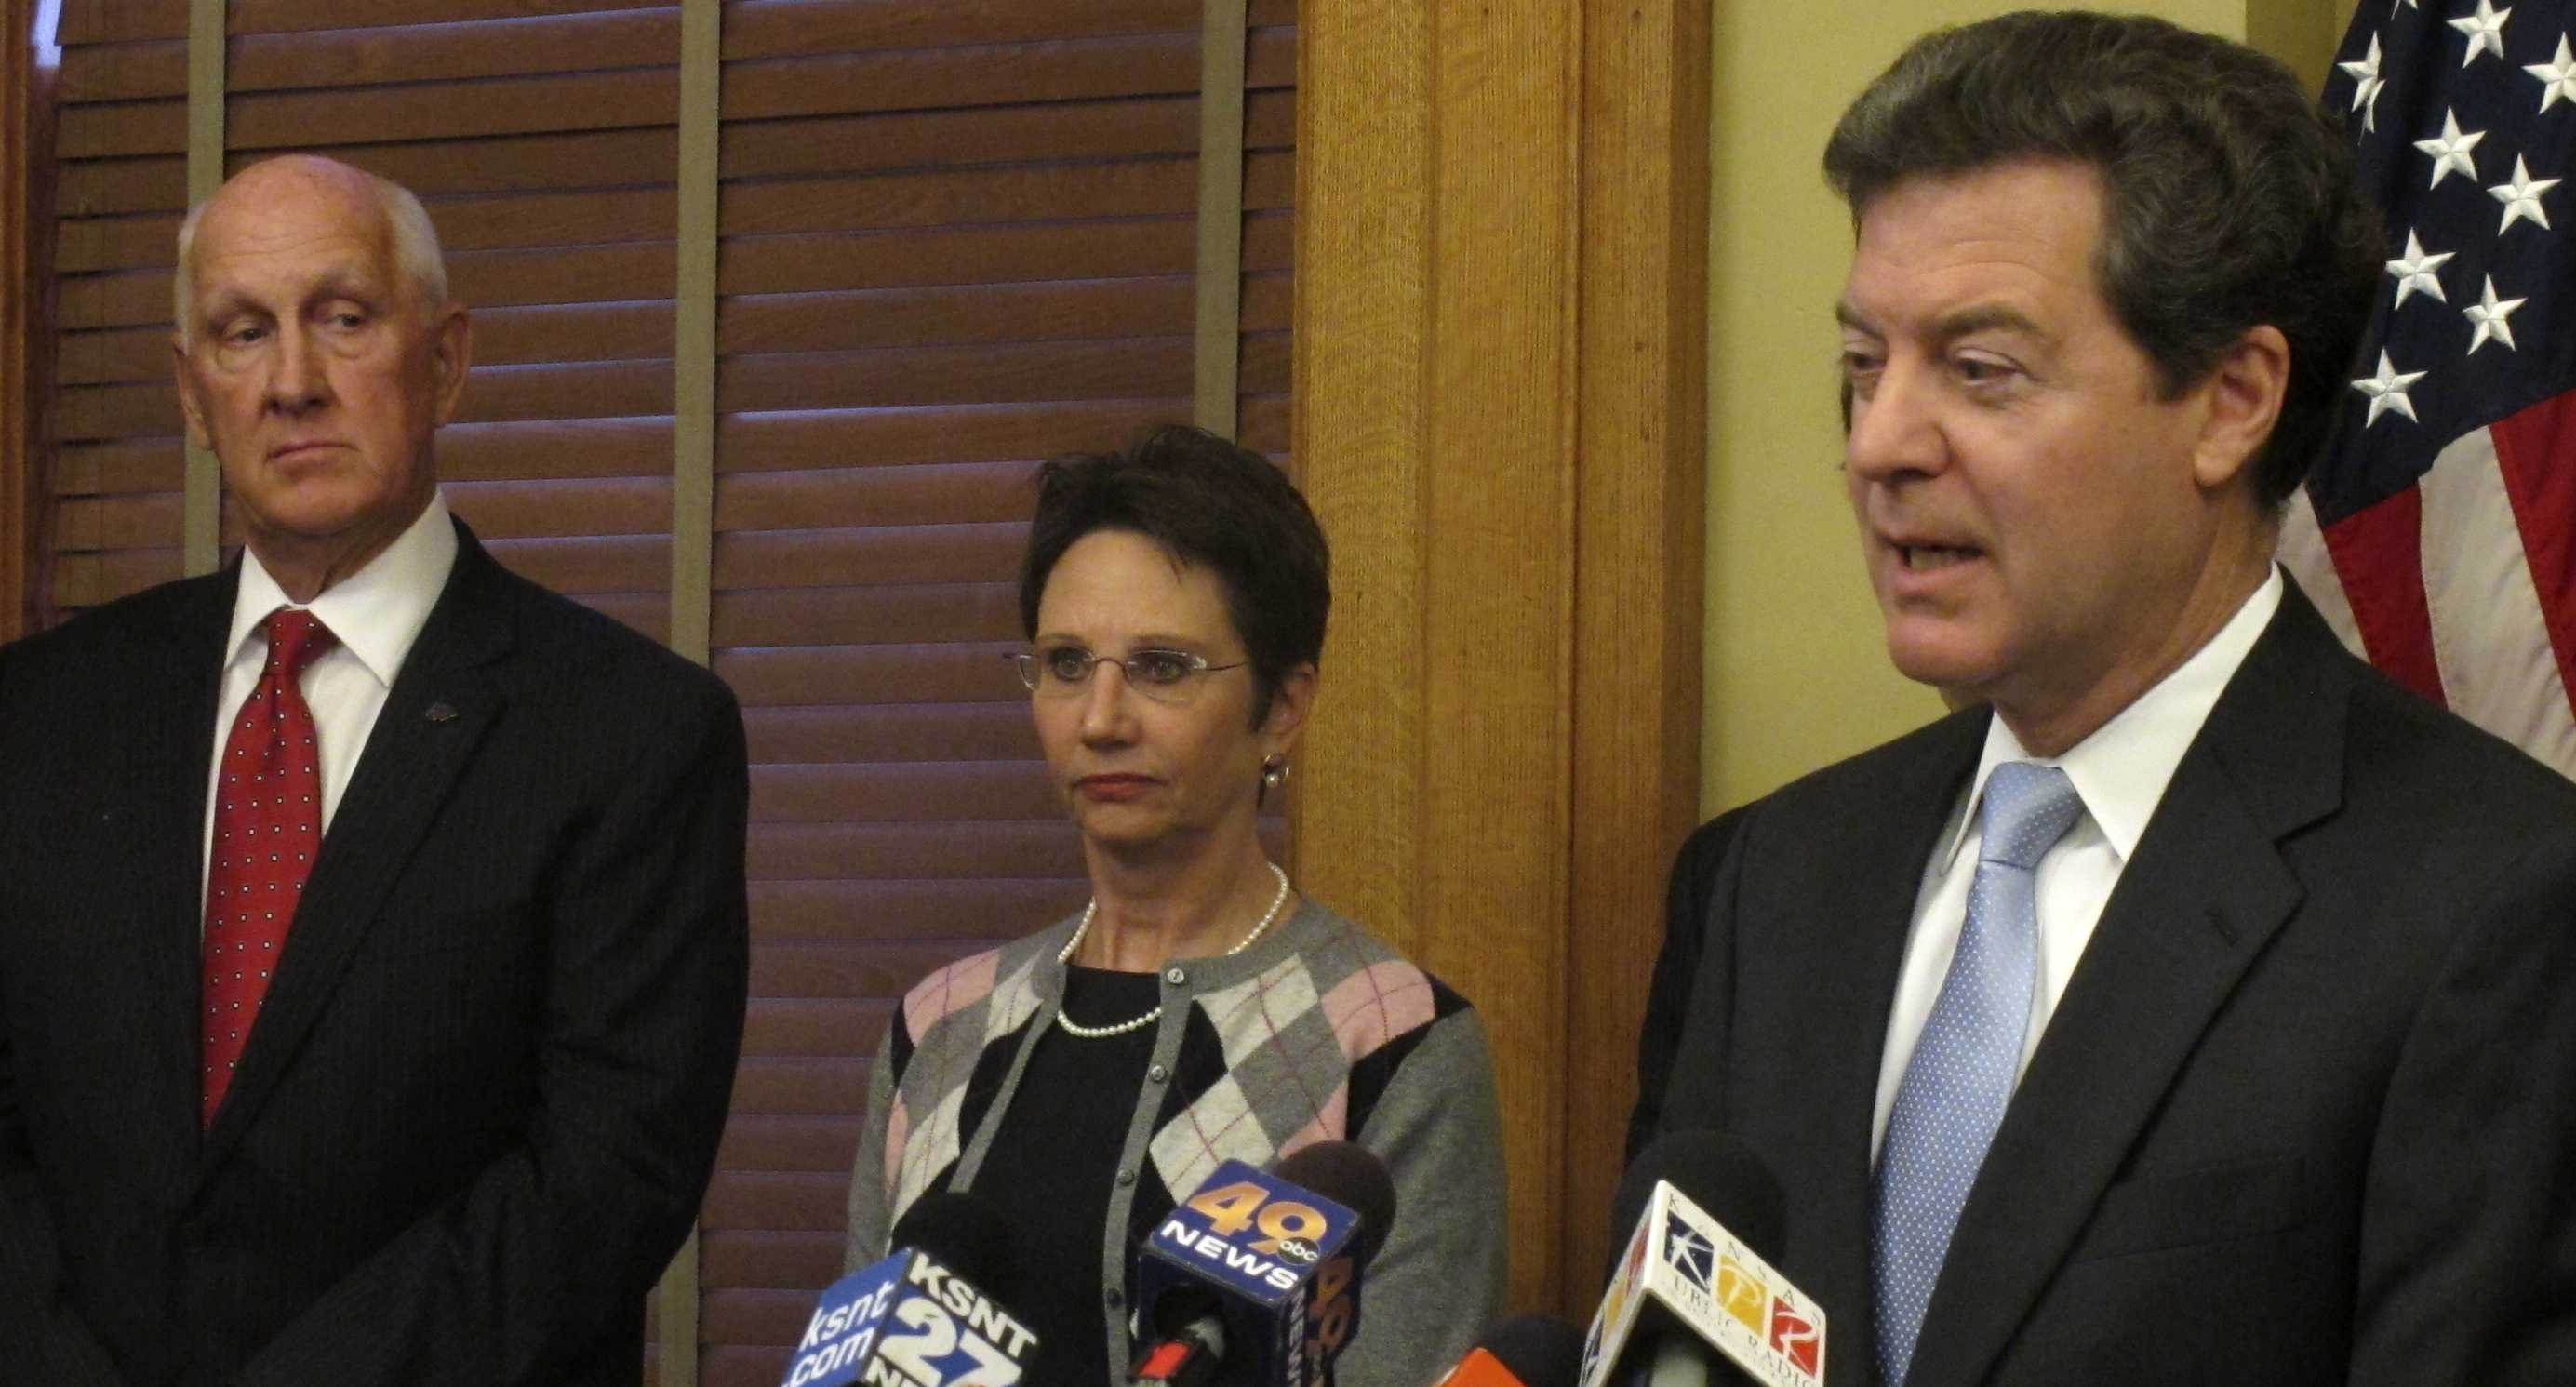 Kansas Governor nominated as US Religious Freedom Ambassador